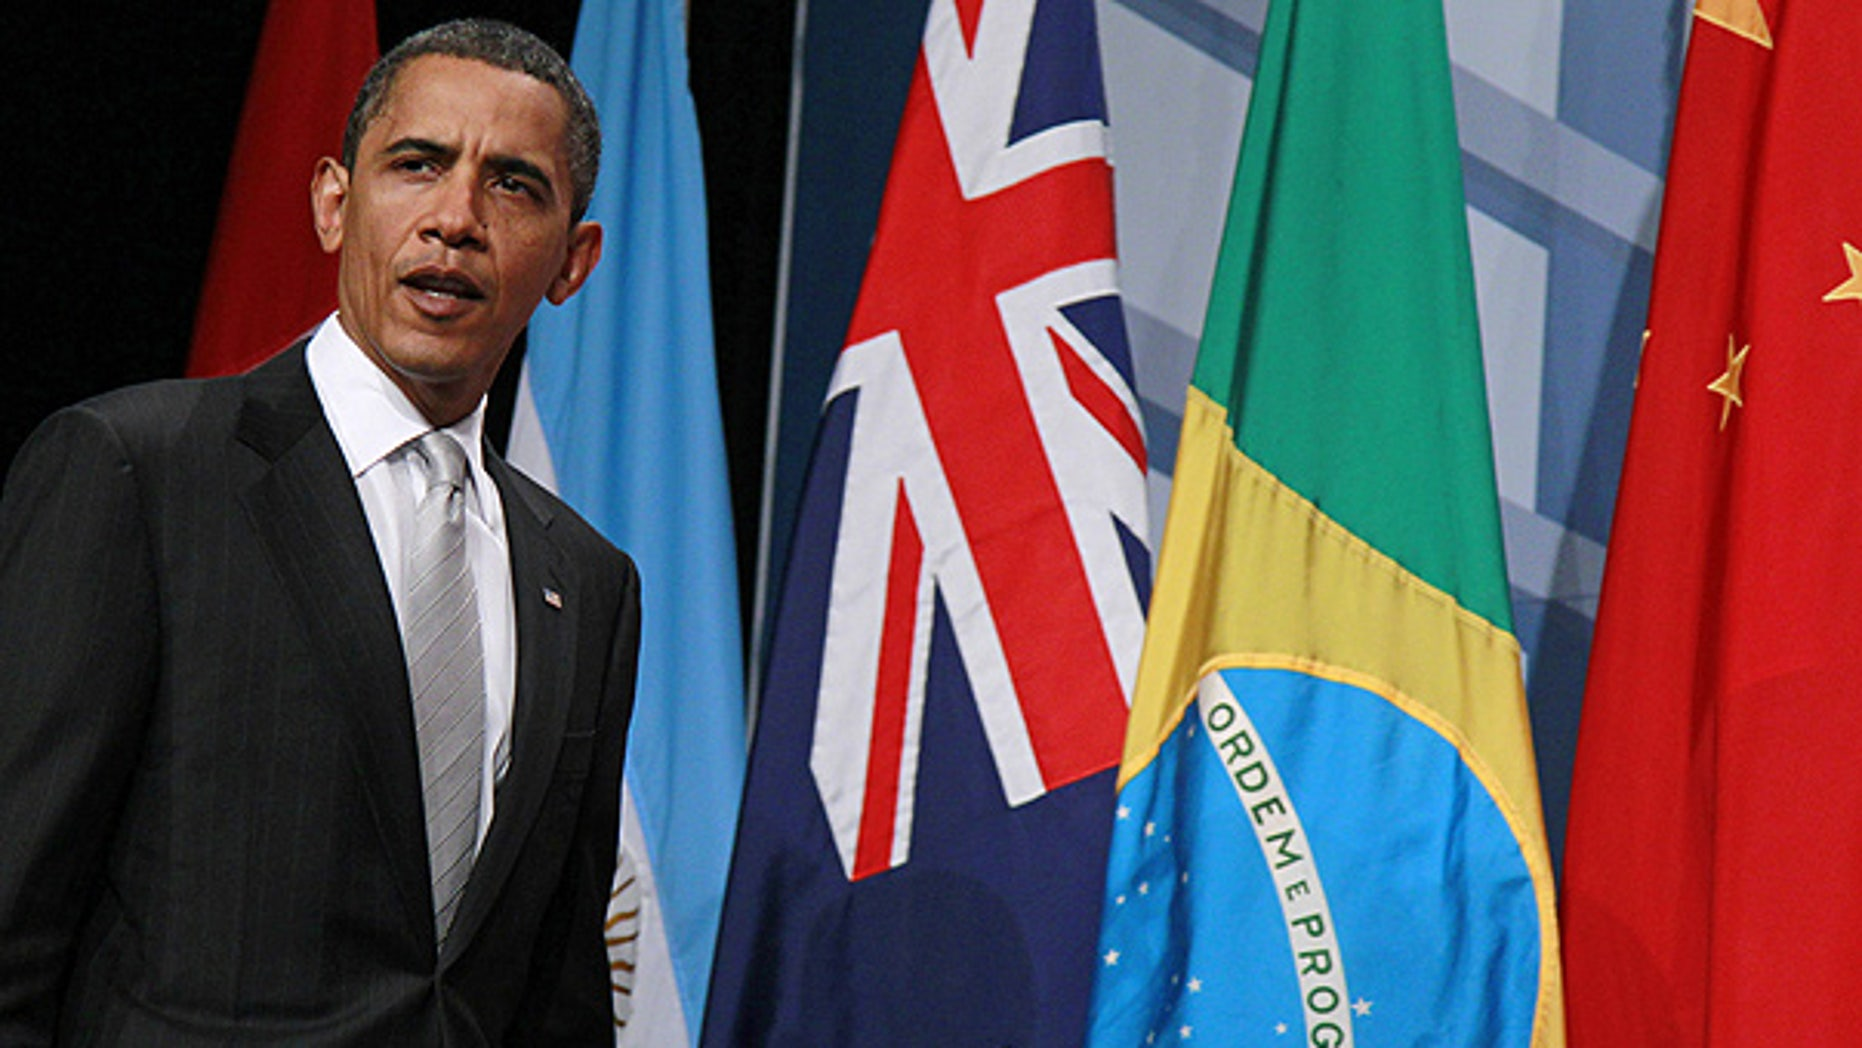 June 27: President Obama arrives for his closing press conference at the G-20 summit in Toronto.